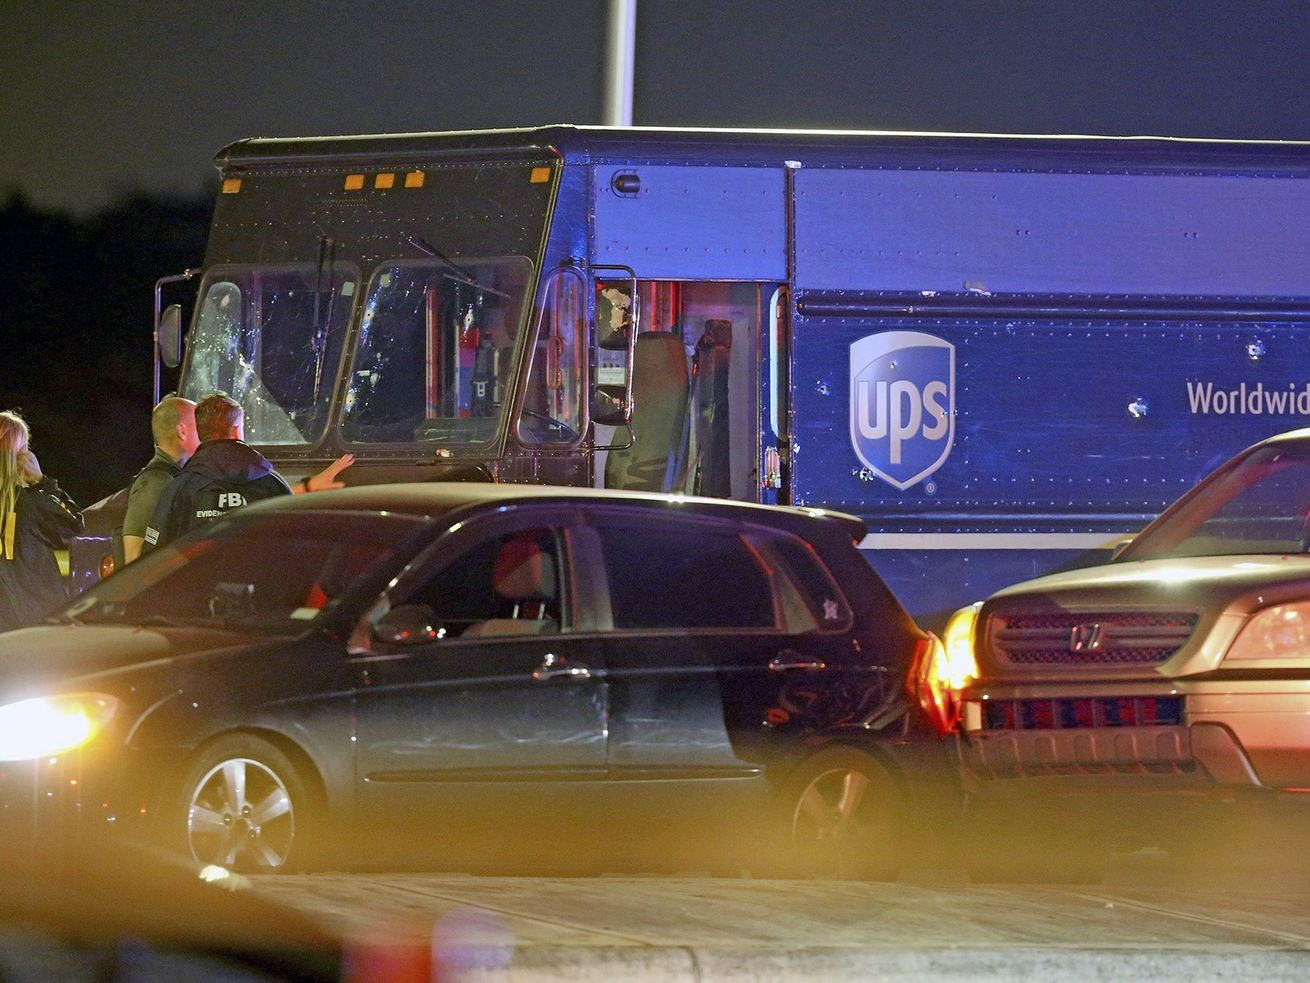 Chase with stolen UPS truck ends with shootout, four dead